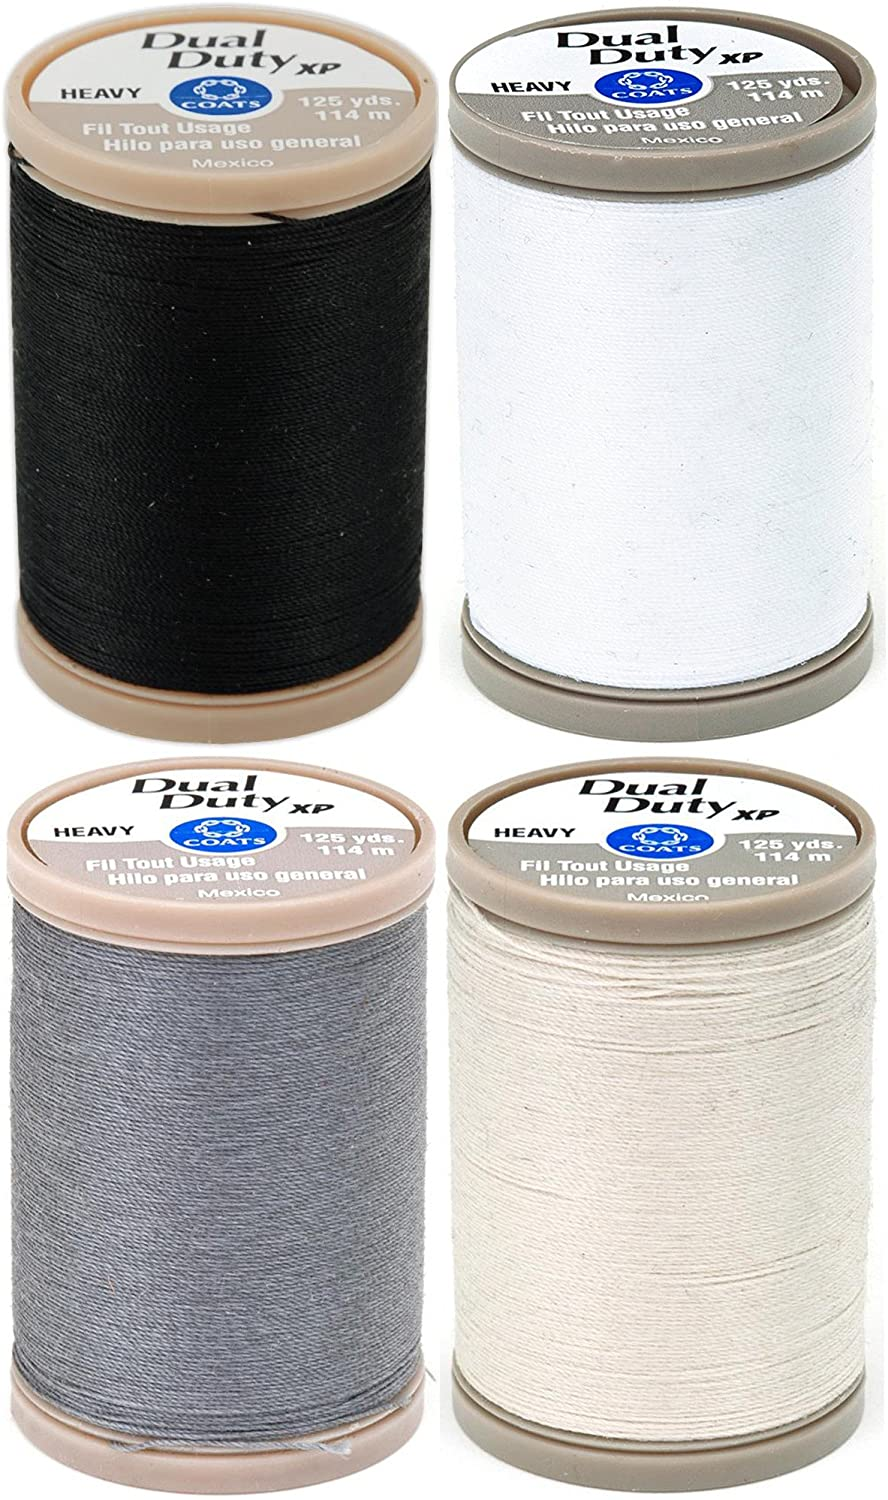 4-PACK - Coats & Clark - Dual Duty XP Heavy Weight Thread - 4 Color Value Pack - (Black+White+Slate+Natural) 125yds Each